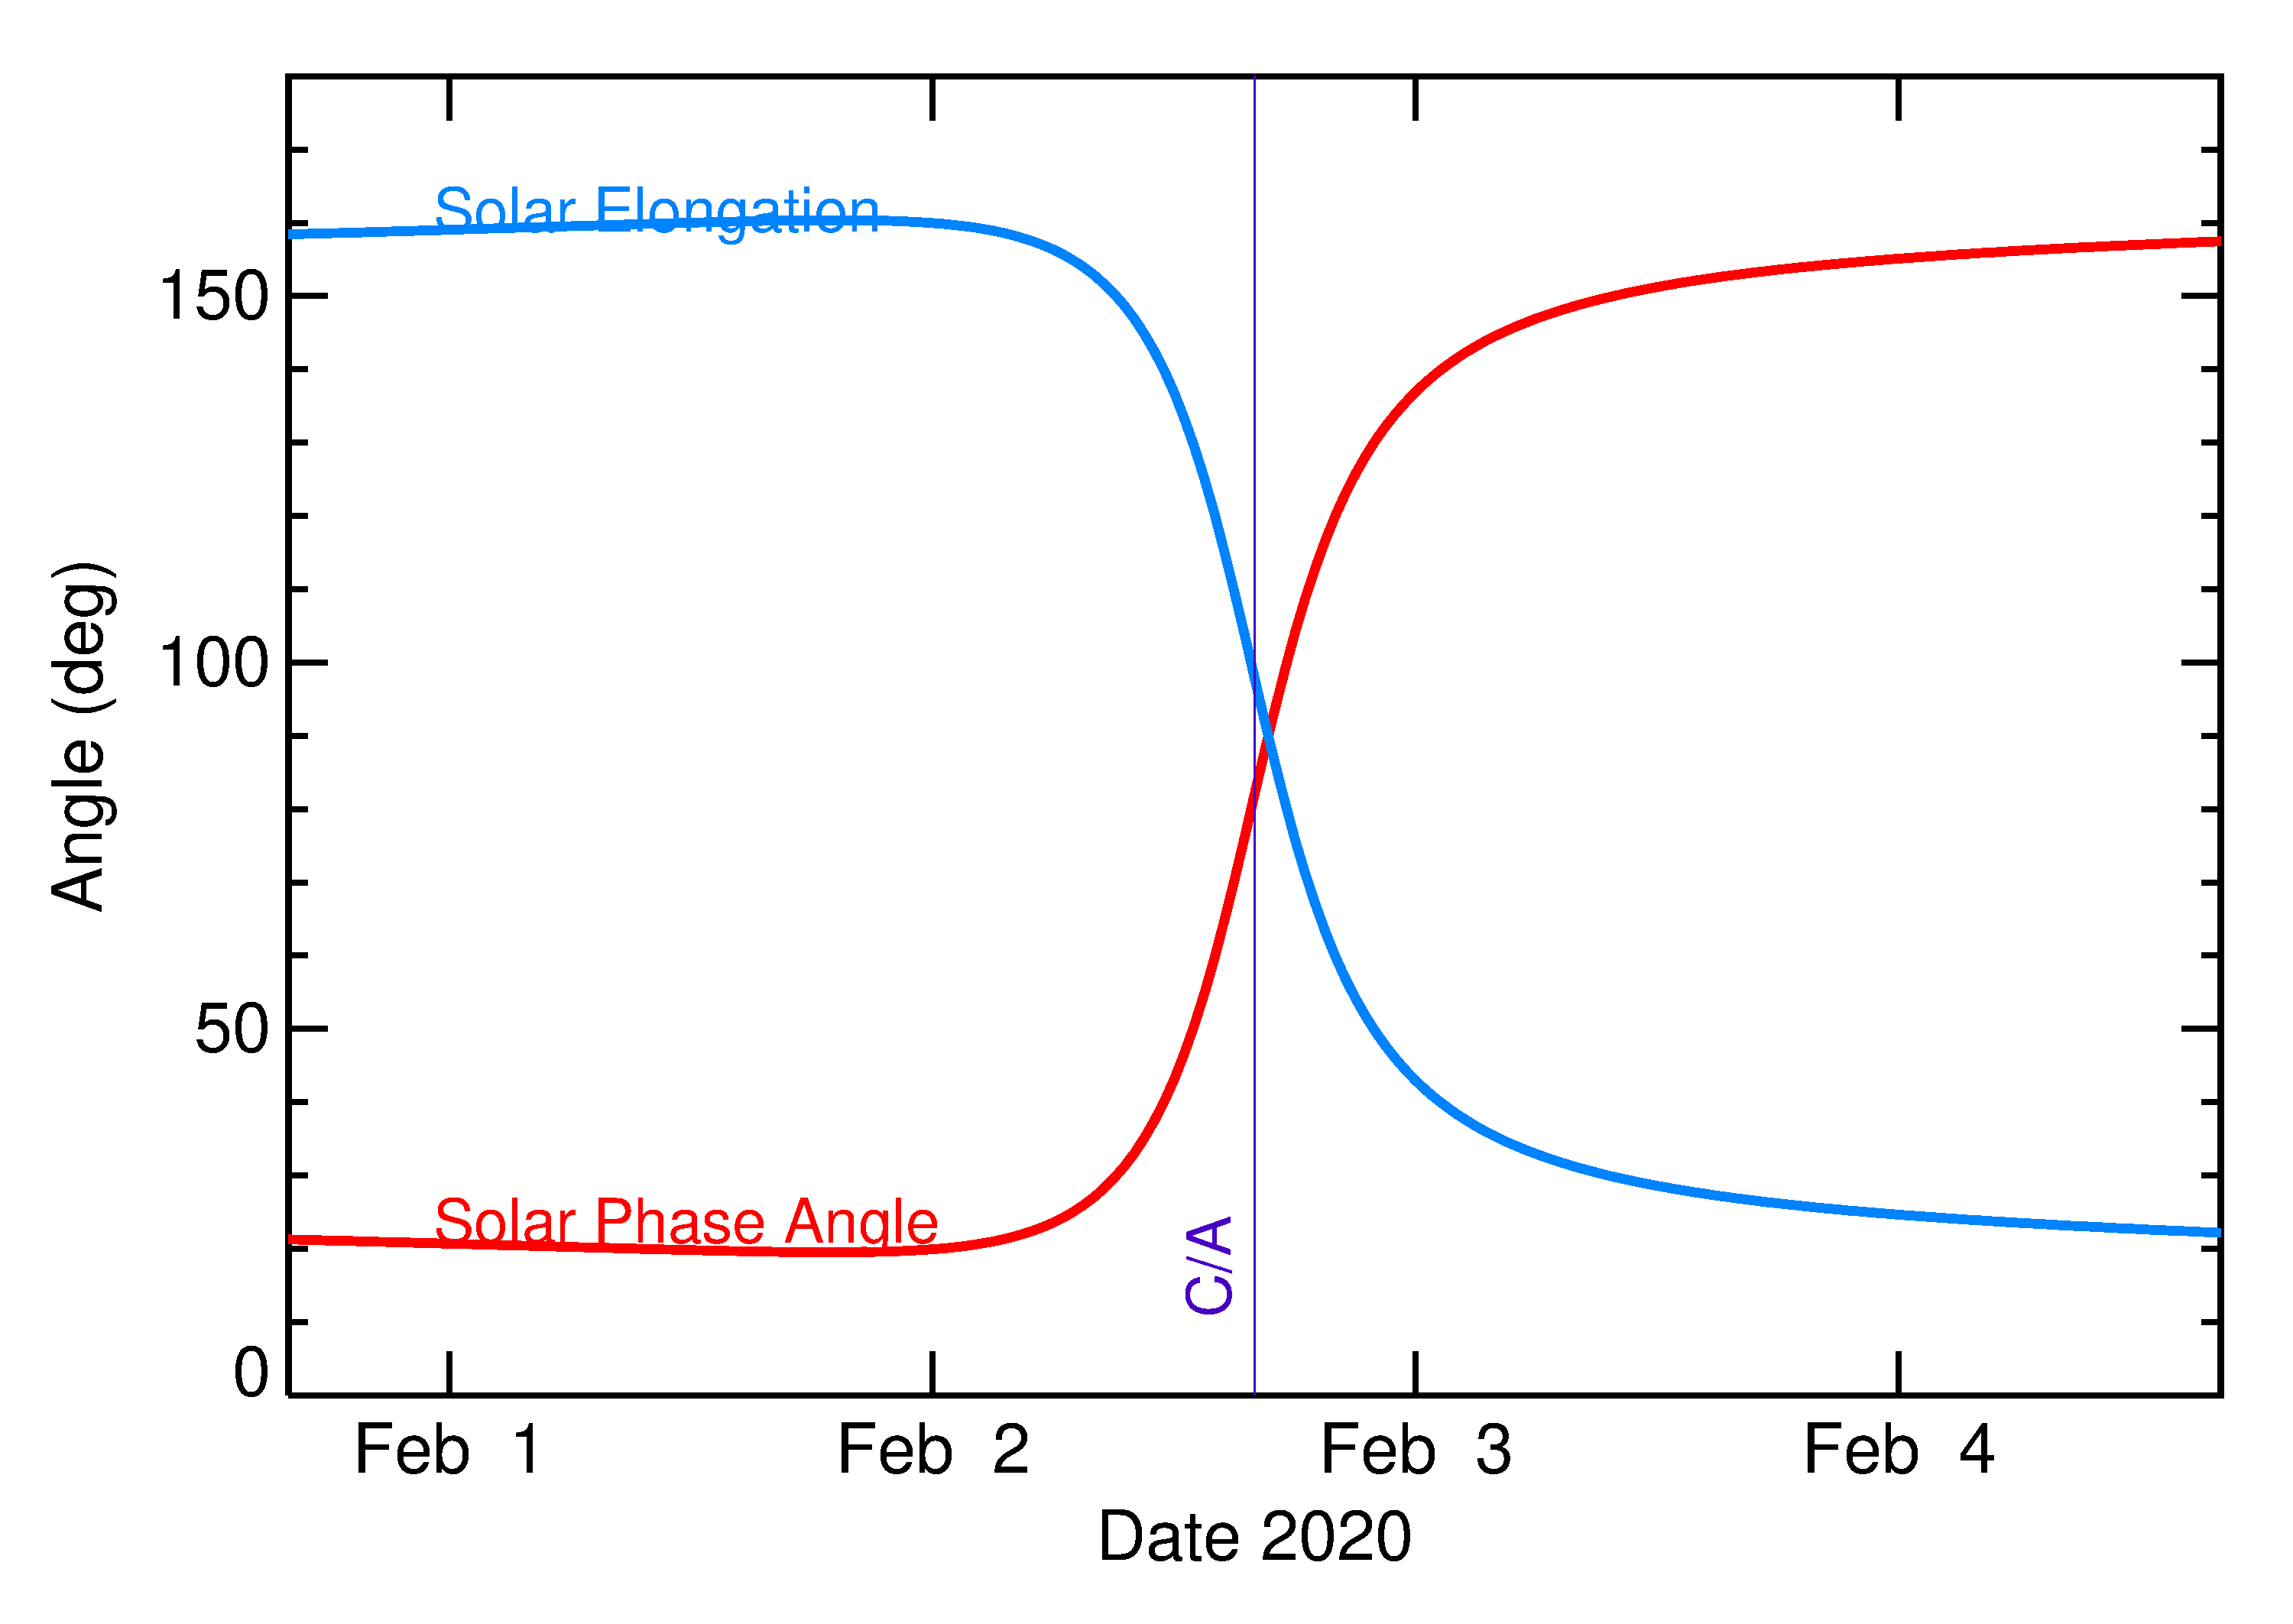 Solar Elongation and Solar Phase Angle of 2020 CA in the days around closest approach